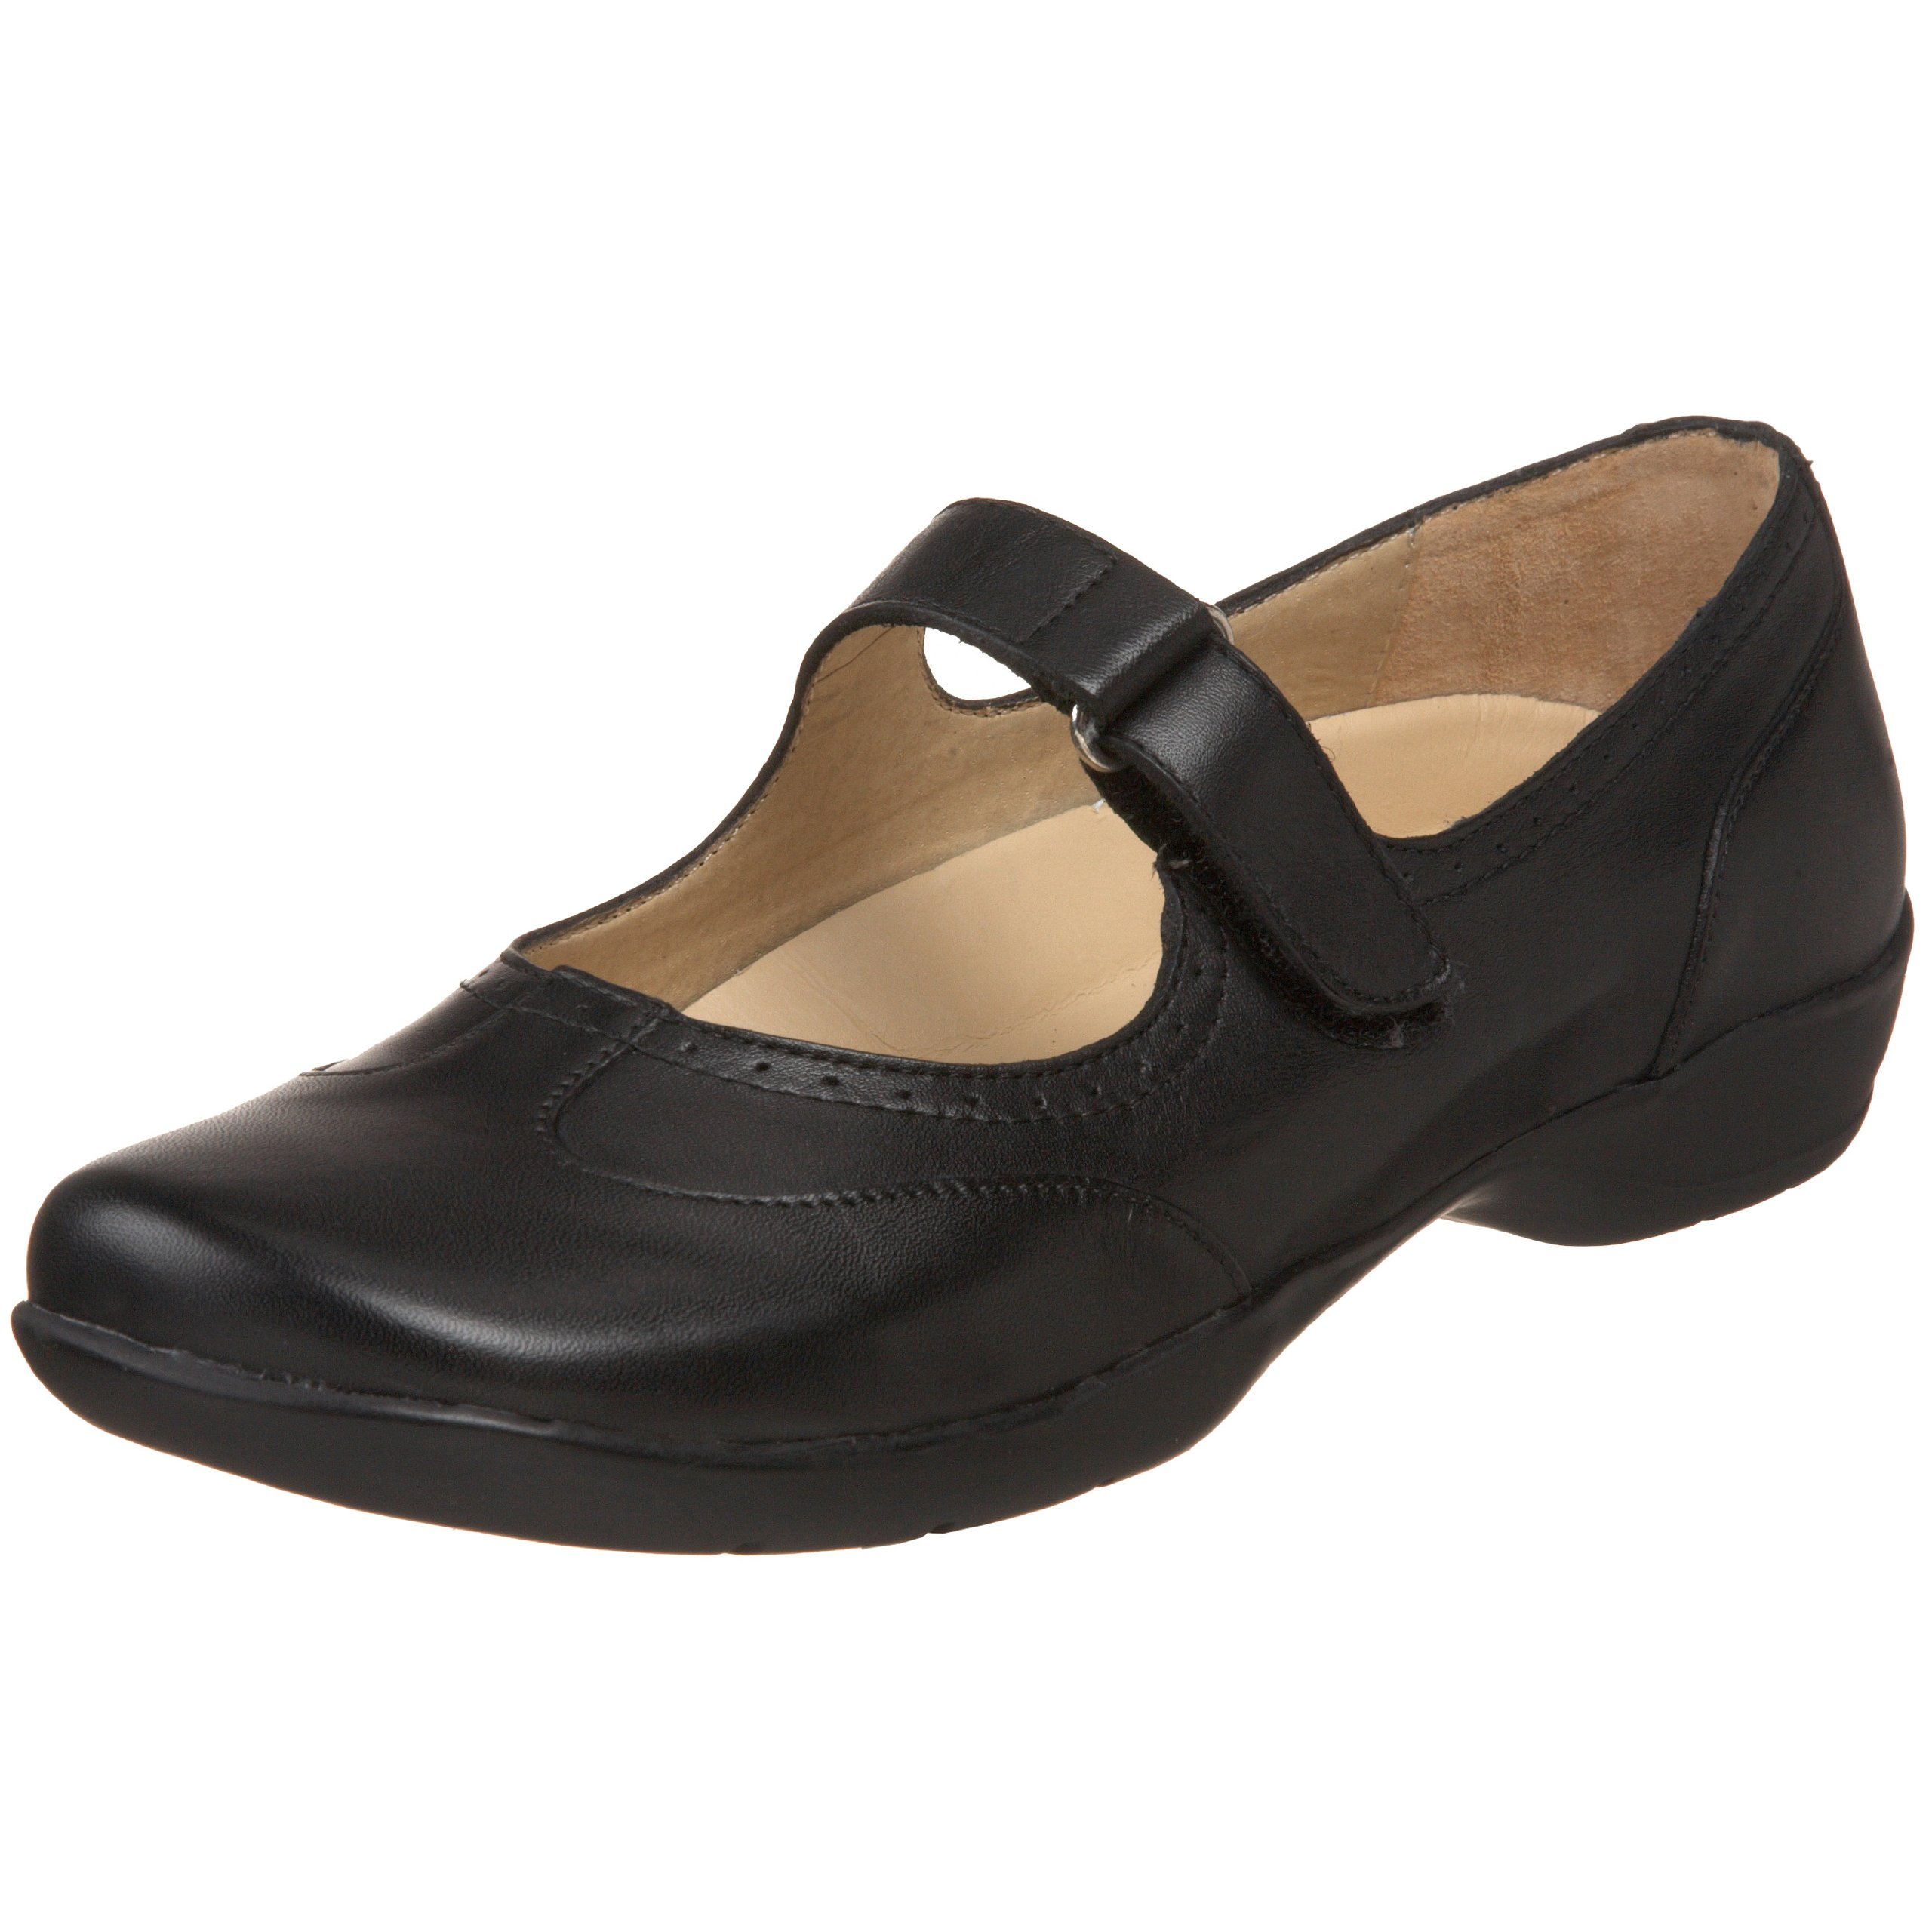 Drew Shoe Women's Isabel Mary Jane,Black Leather,6 W US